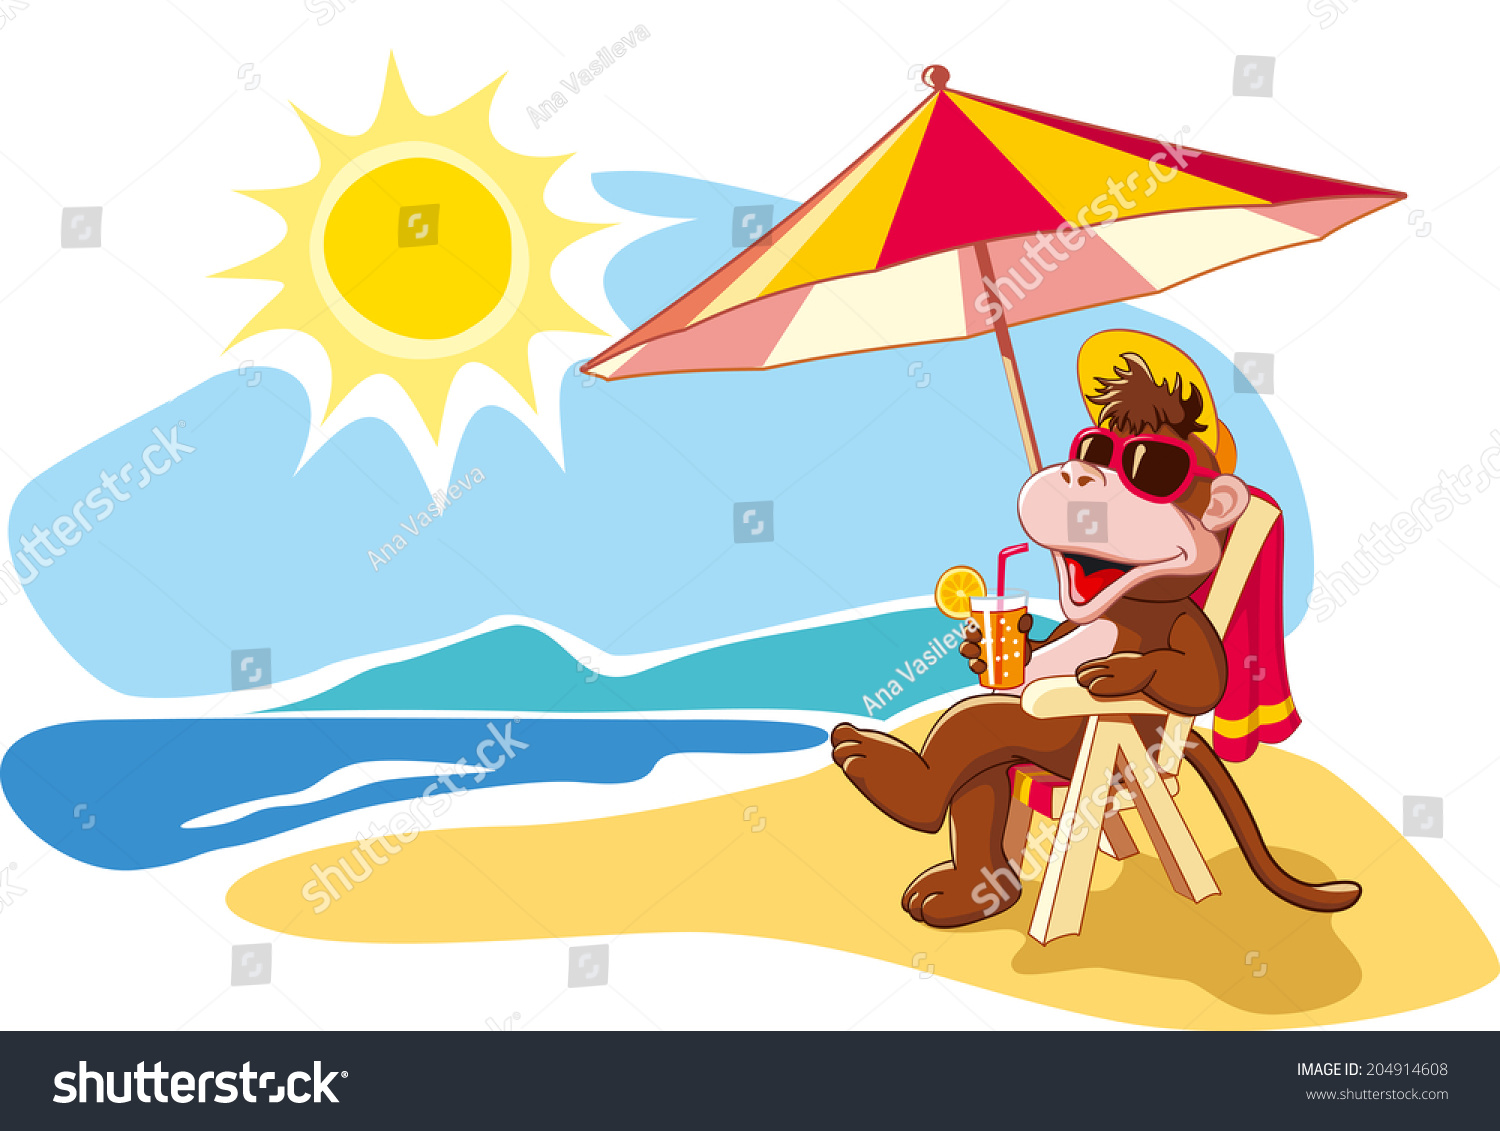 Beach chair and parasol vector illustration stock vector image - Funny Cartoon Monkey Relaxing On Beach Stock Vector